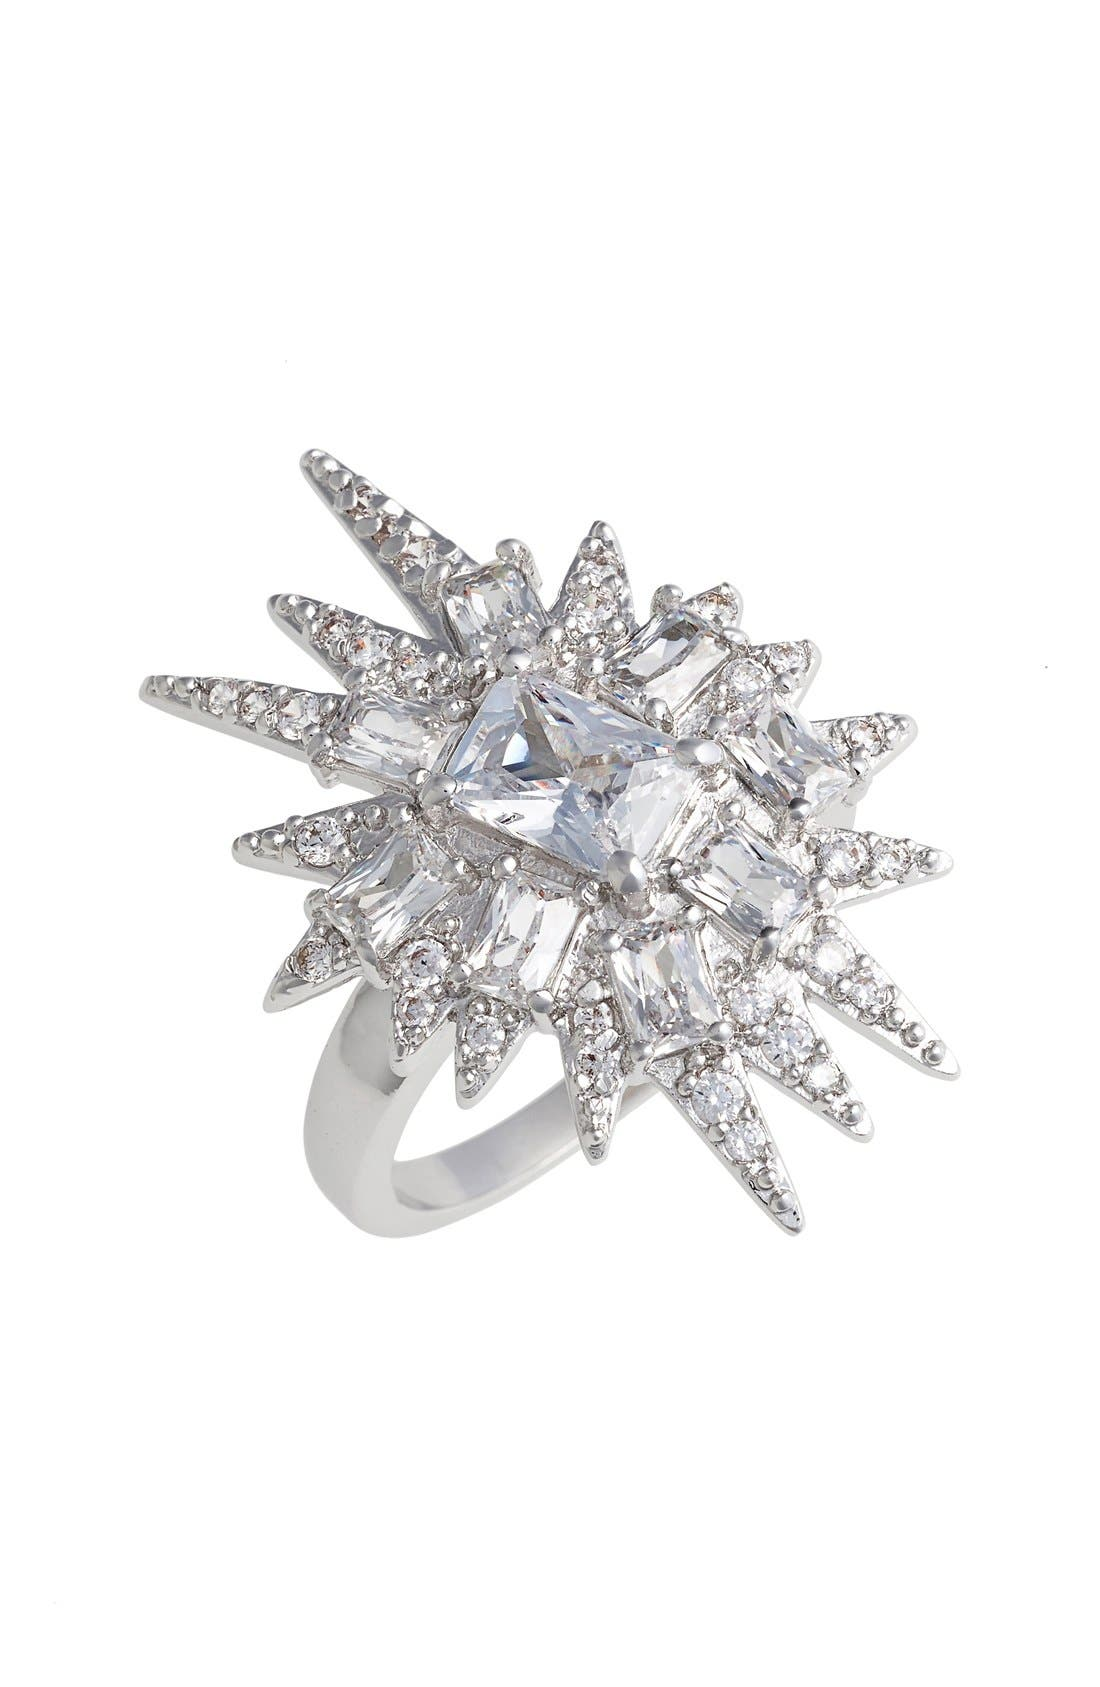 'Explosion' Cubic Zirconia Cocktail Ring,                         Main,                         color, Silver